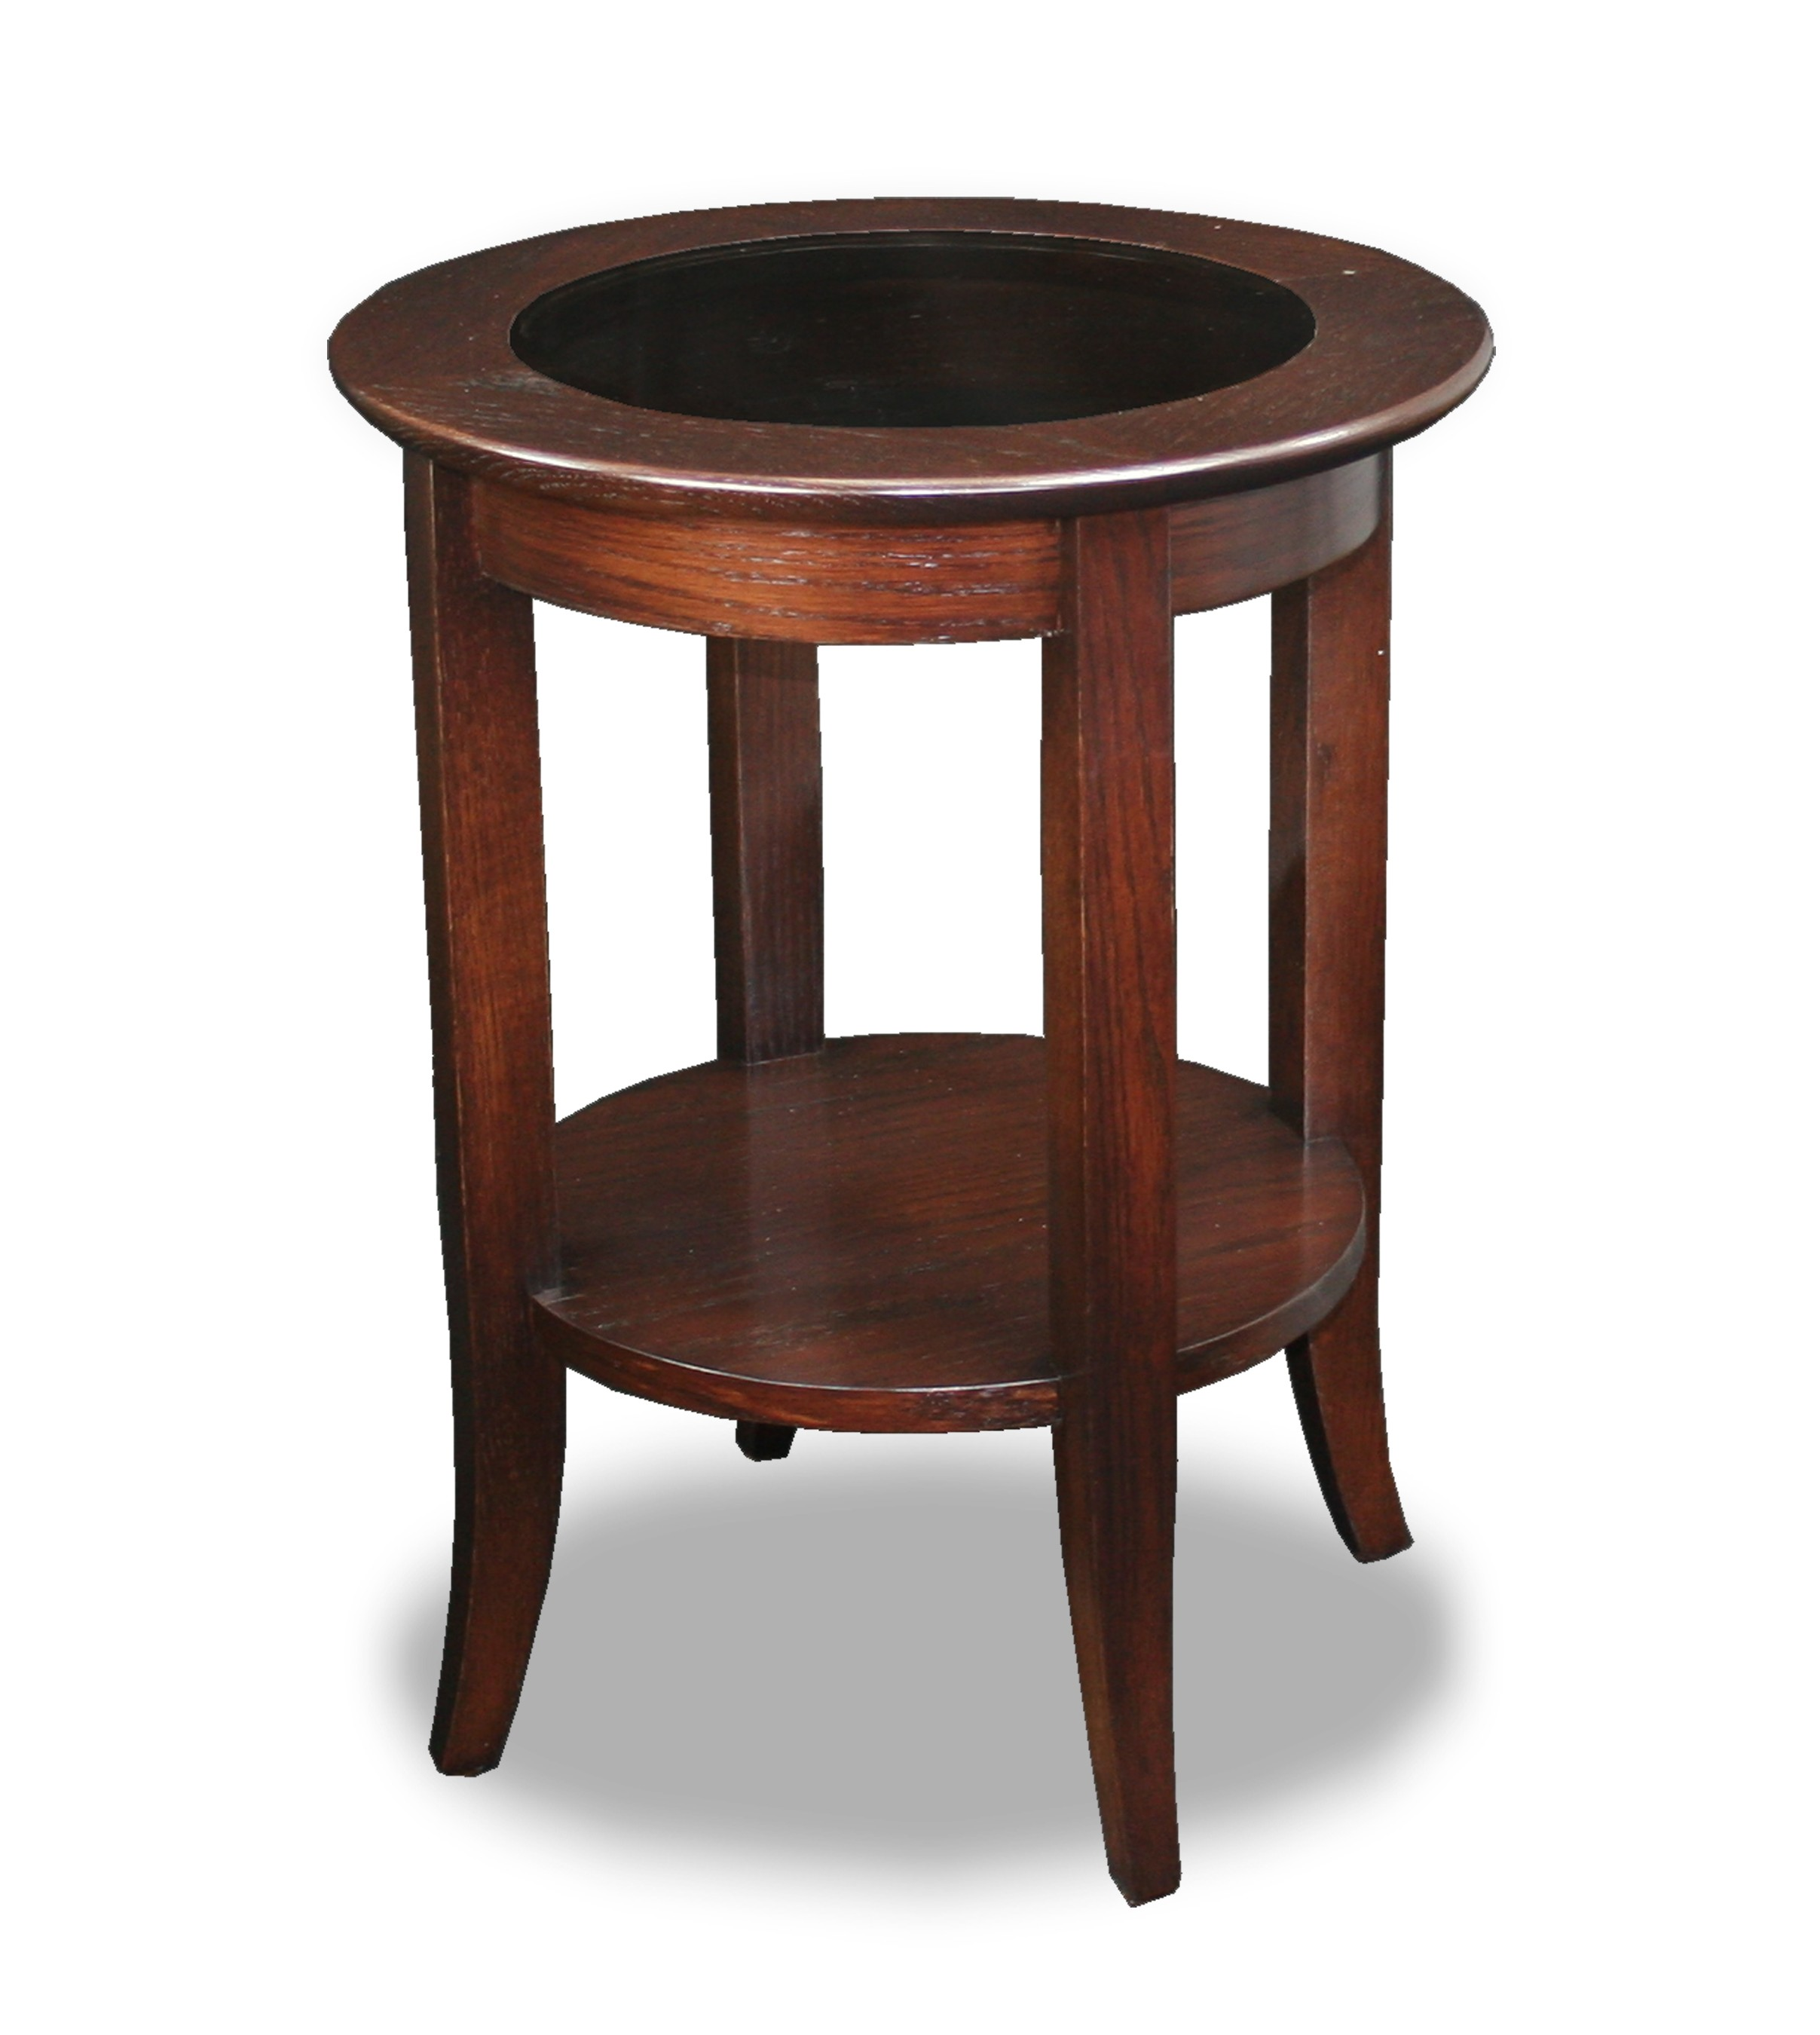 the terrific great black glass end side table mira road tables metal and finish base top small round wood construction bronze chocolate oak shelves shape legs solid with storage